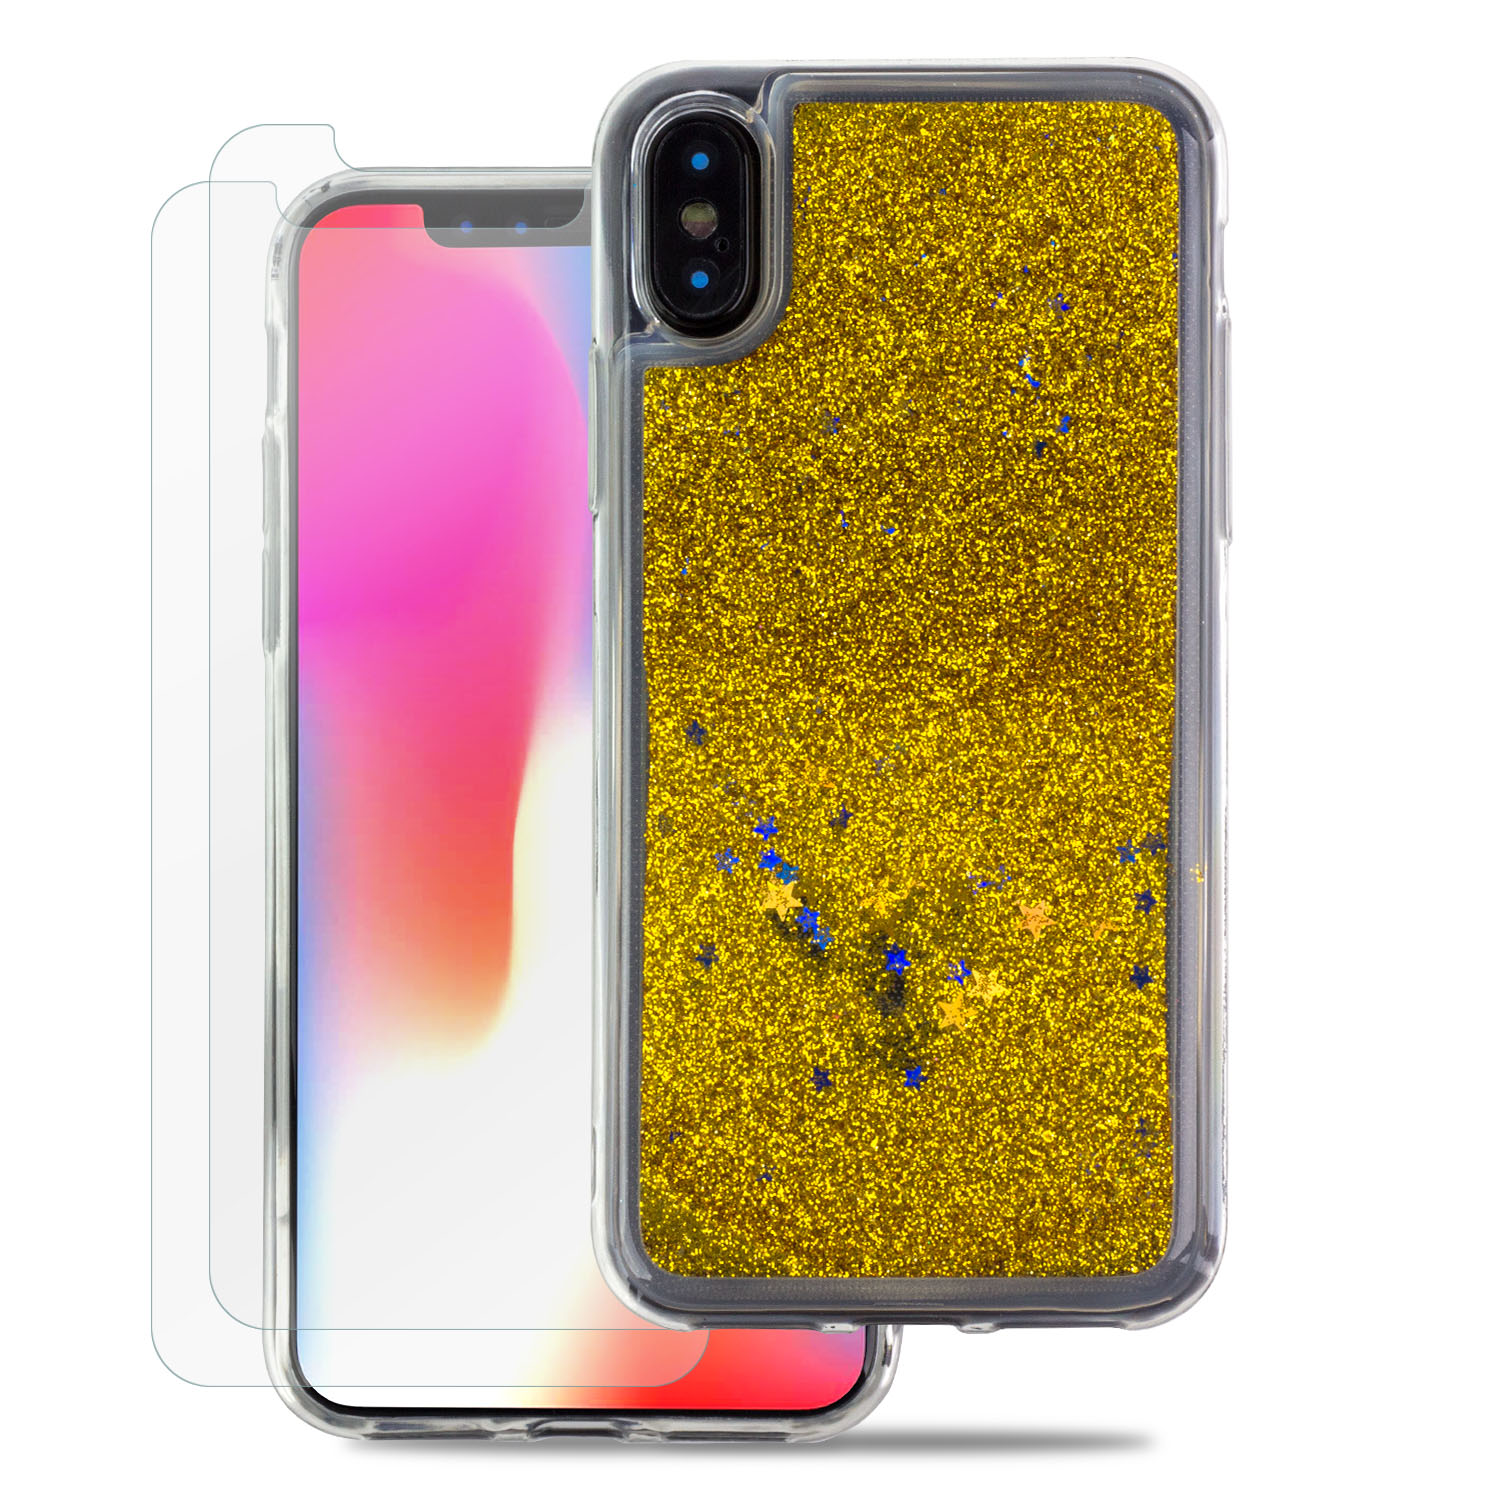 TortugaArmor Durable and Fully Covered iPhone X Case, Dazzling Luxury White Liquid Floating Sparkle Hard Phone Case with 2 Scratch Resistant Tempered Glass Screen Protector for iPhone X, iPhone 10